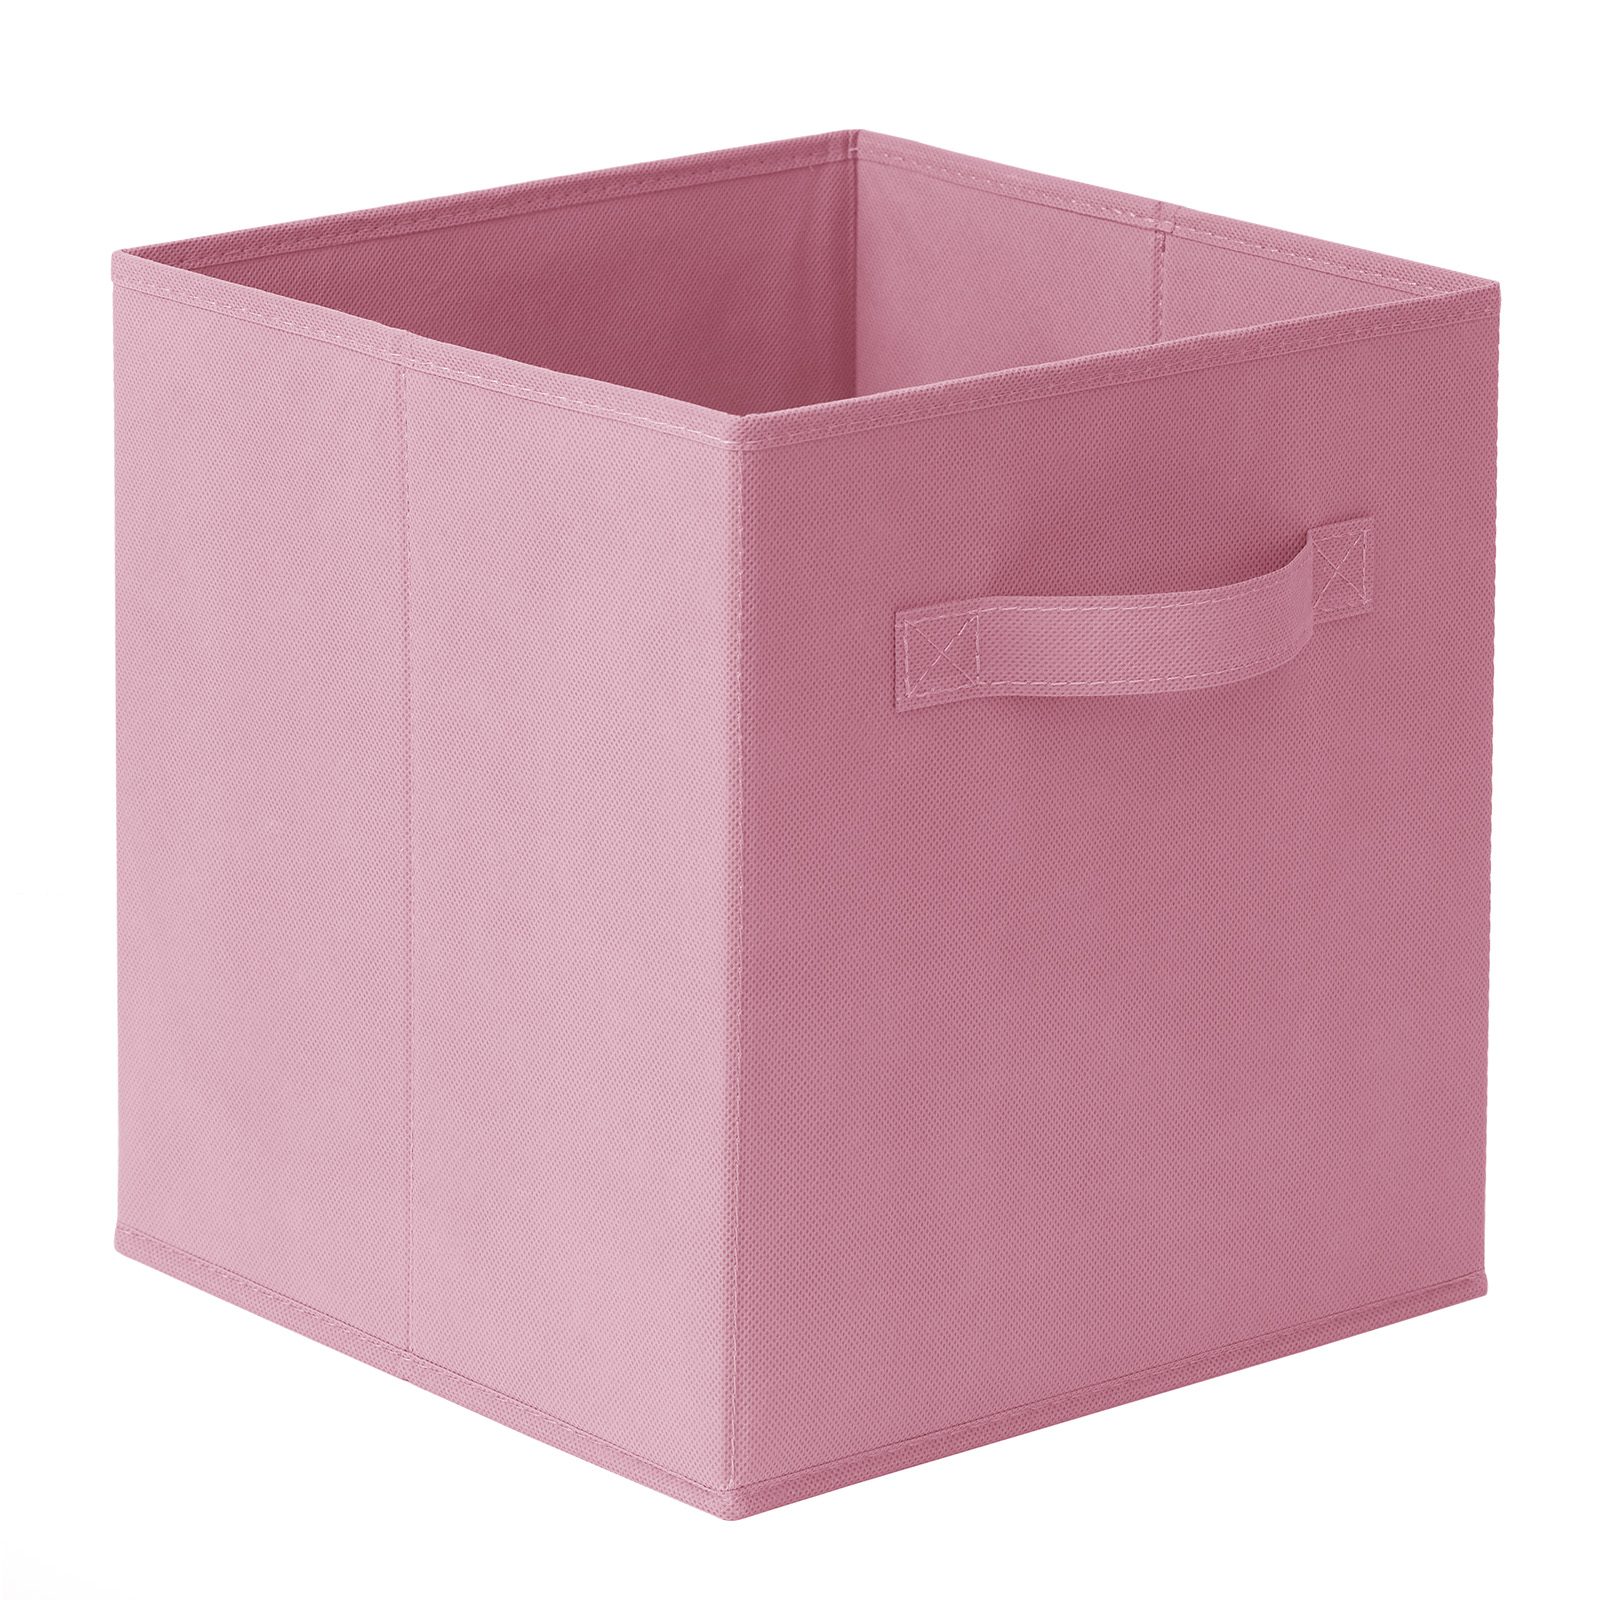 6-Collapsible-Foldable-Cloth-Fabric-Cubby-Cube-Storage-Bins-Baskets-for-Shelves thumbnail 43